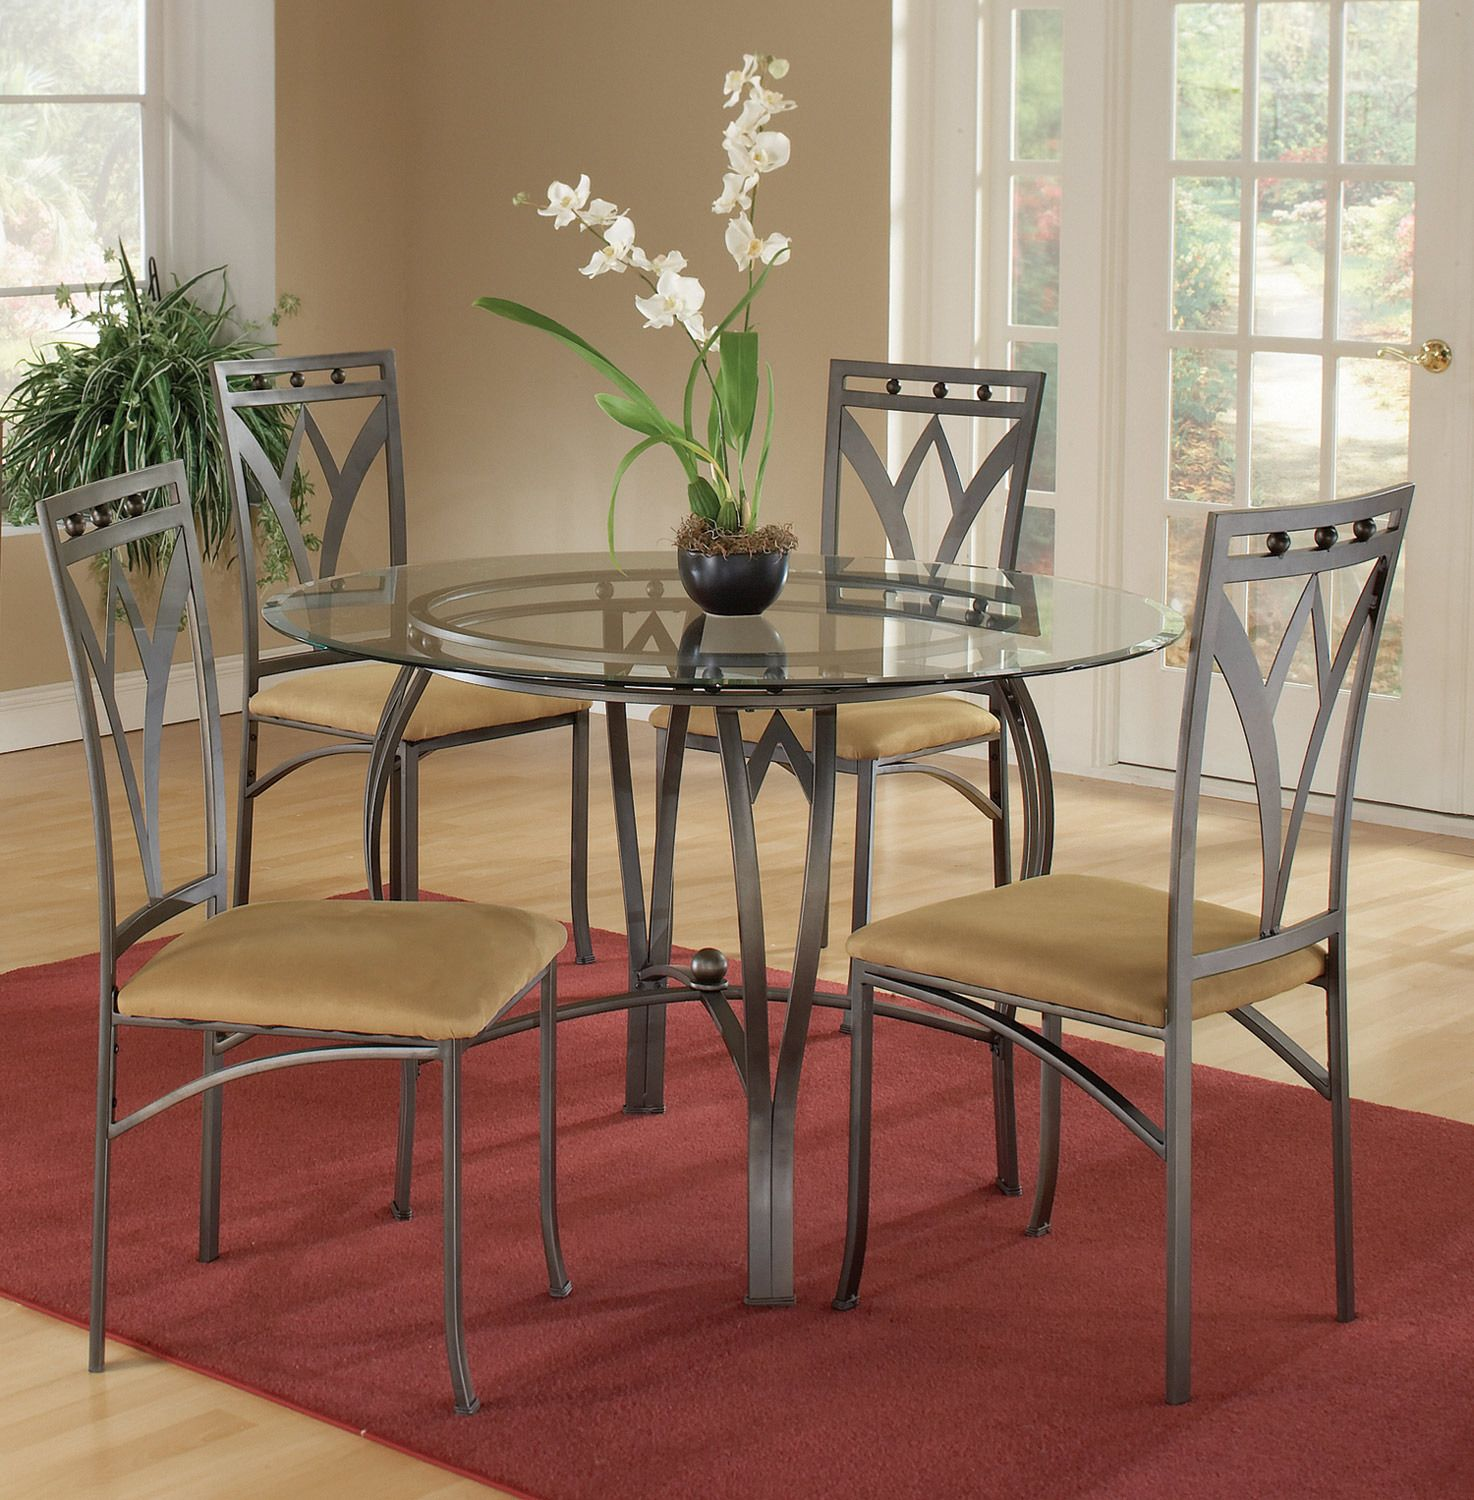 Arrowhead 5 Piece Dinette Table And 4 Chairs Round Metal Dining Table With Arched Stretcher And Lay On Glass Muebles De Metal Mesas De Vidrio Muebles Finos